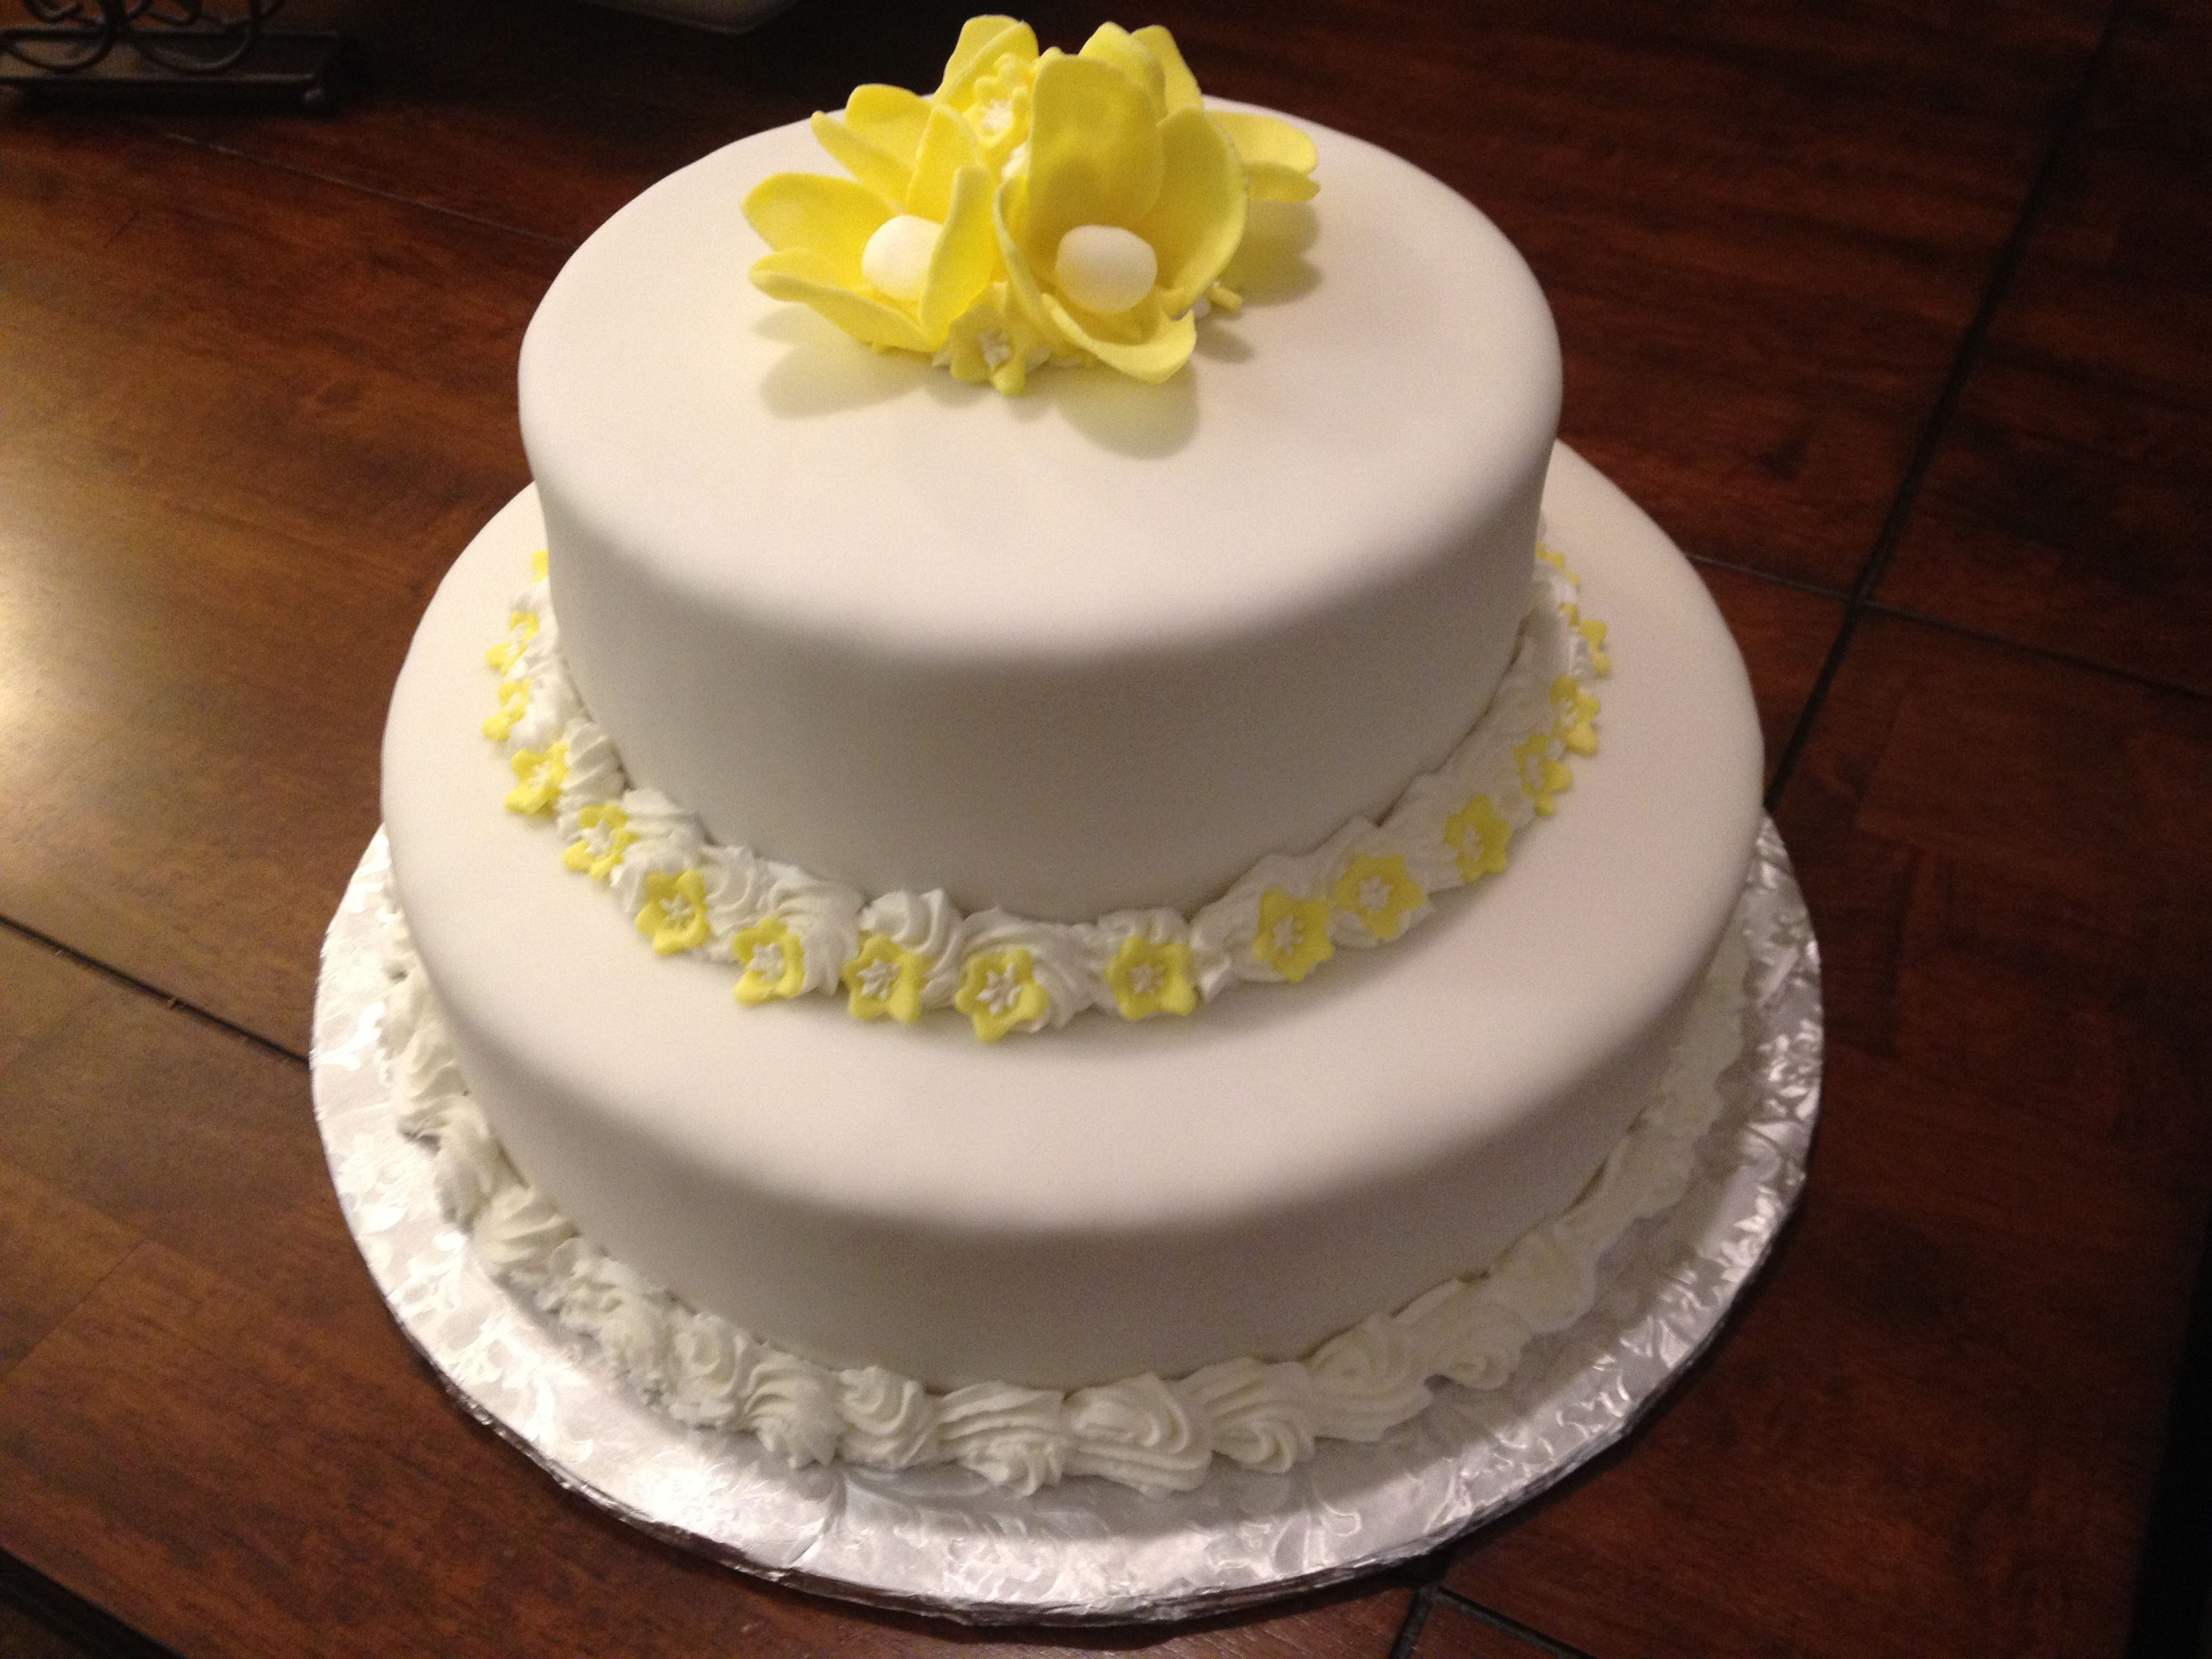 Cake Design For Grandma : Grandma s 85th birthday cake! Let Them Eat Cake Pinterest